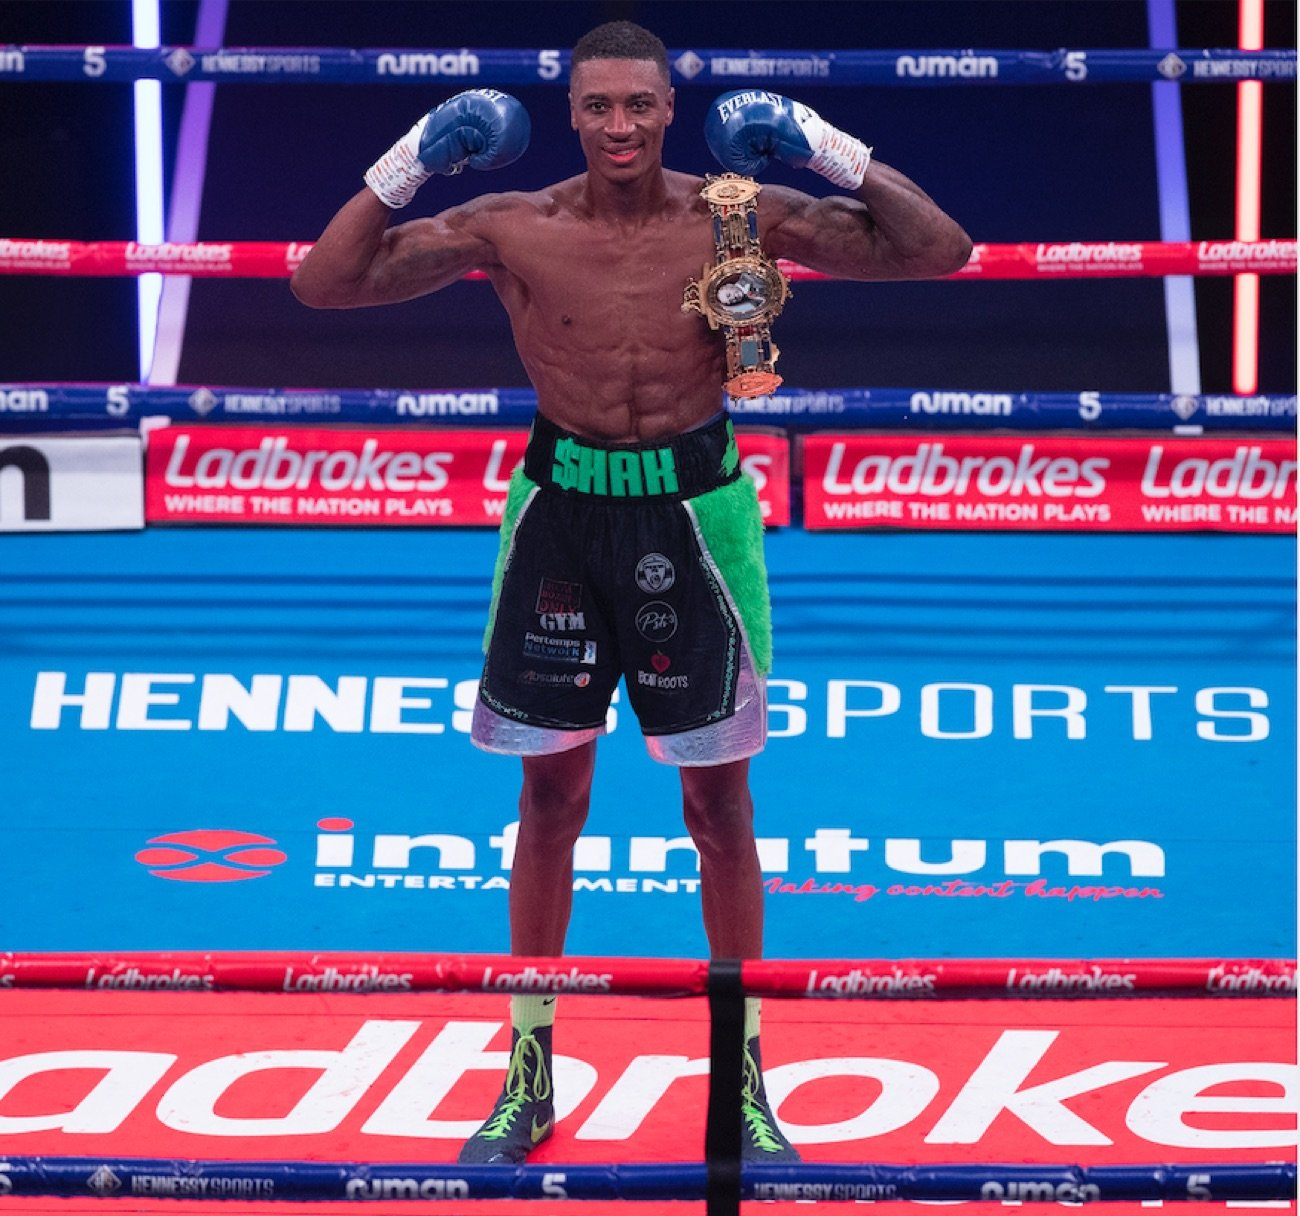 Chad Sugden, Shakan Pitters - Shakan Pitters is the new British Light-Heavyweight Champion after defeating Chad Sugden by unanimous points decision in Redditch last night.